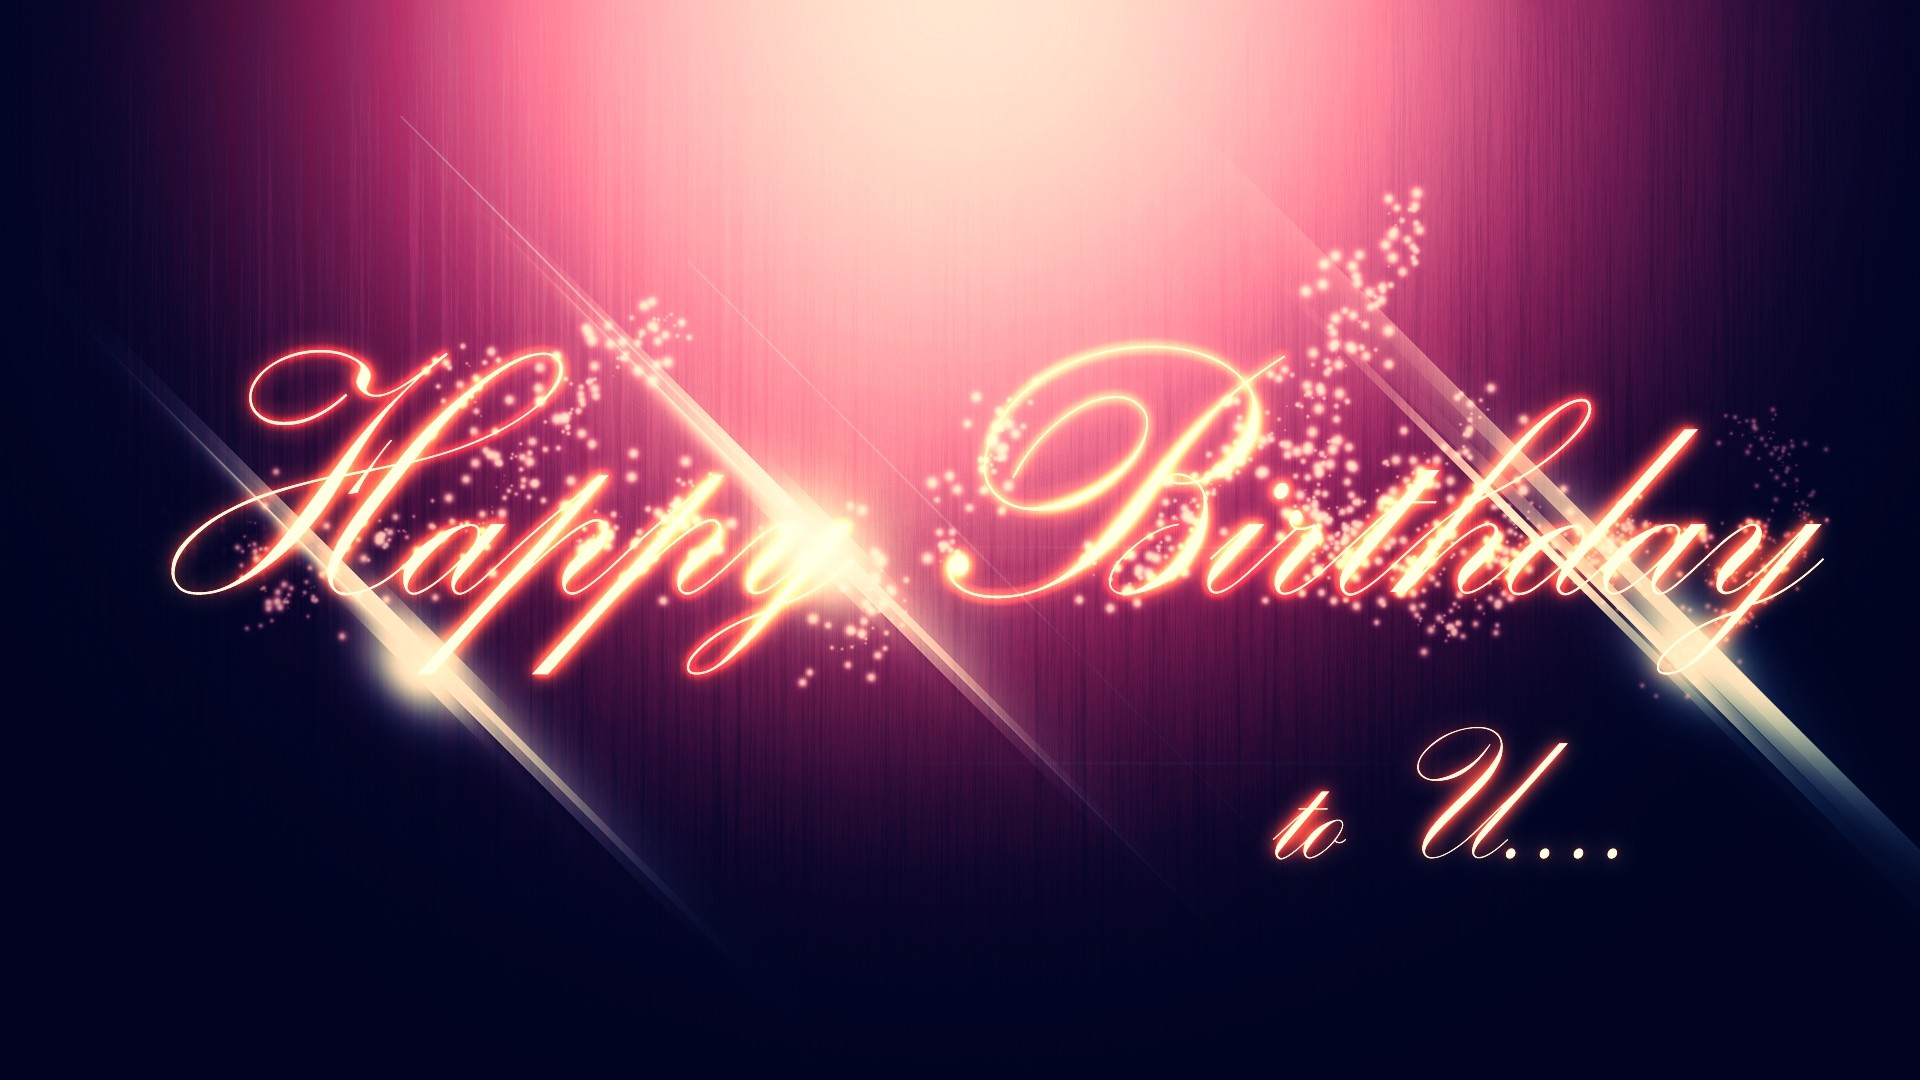 Happy Birthday 2013 Greeting Cards HD Wallpaper of 1920x1080